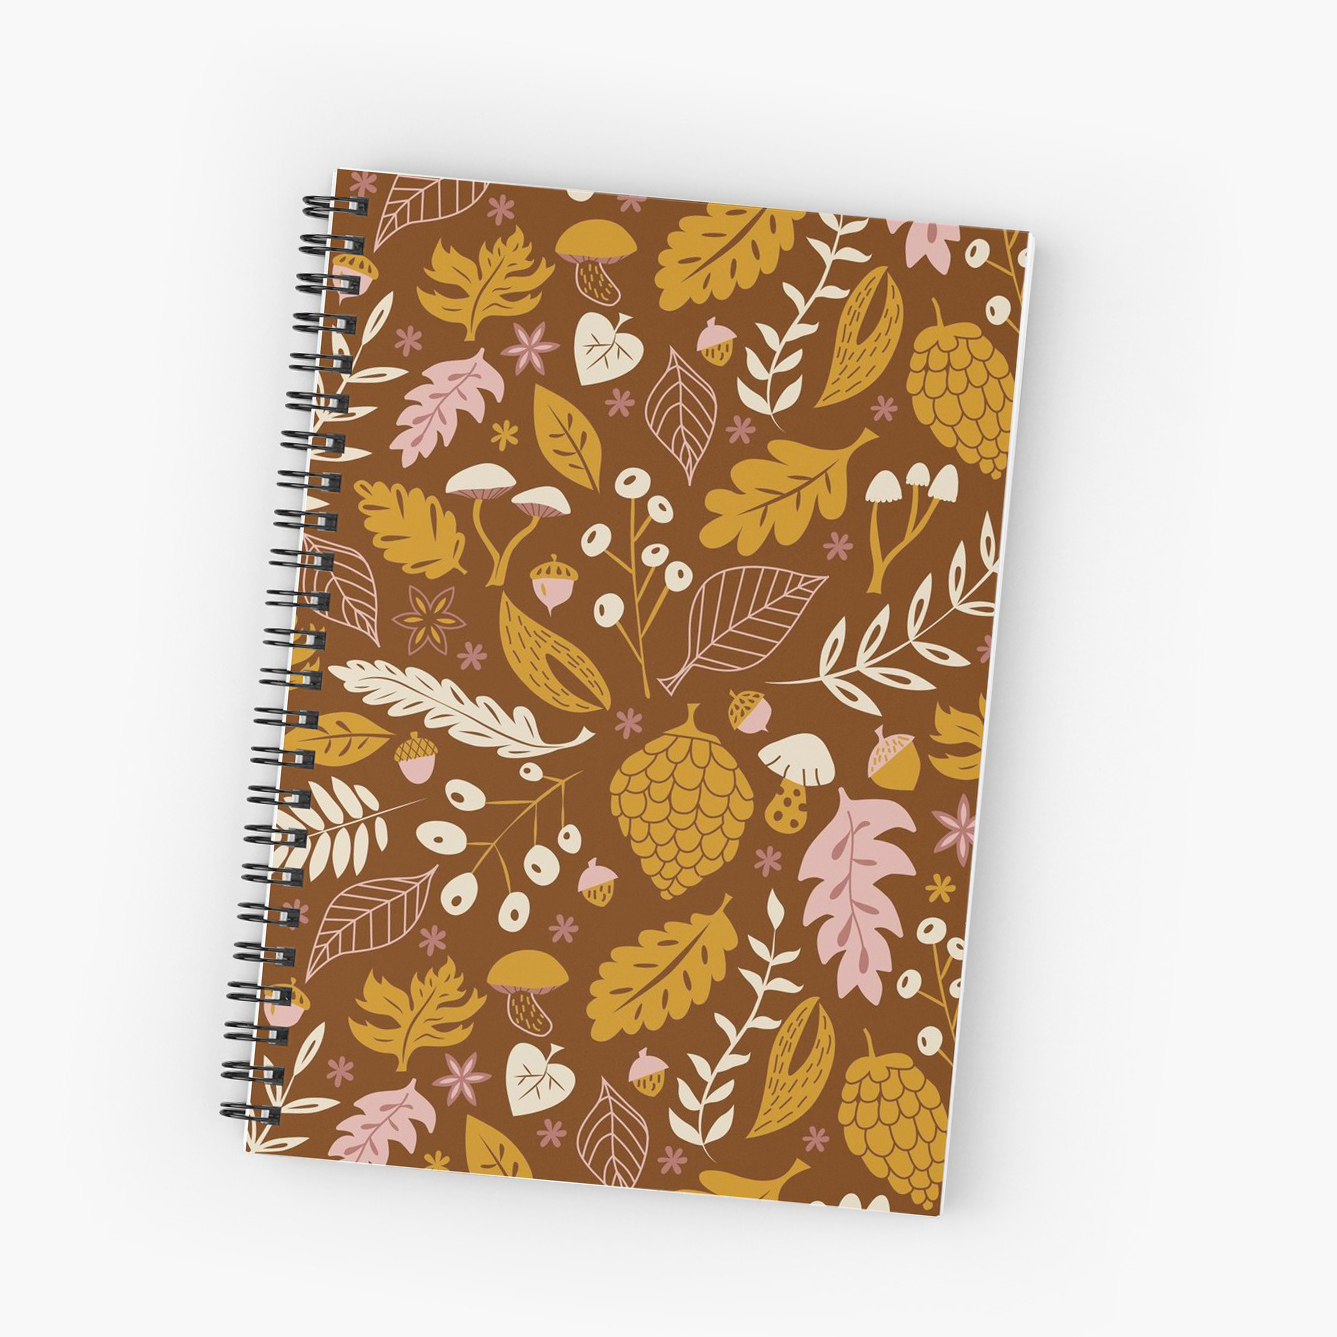 FALL-NOTEBOOK.jpg